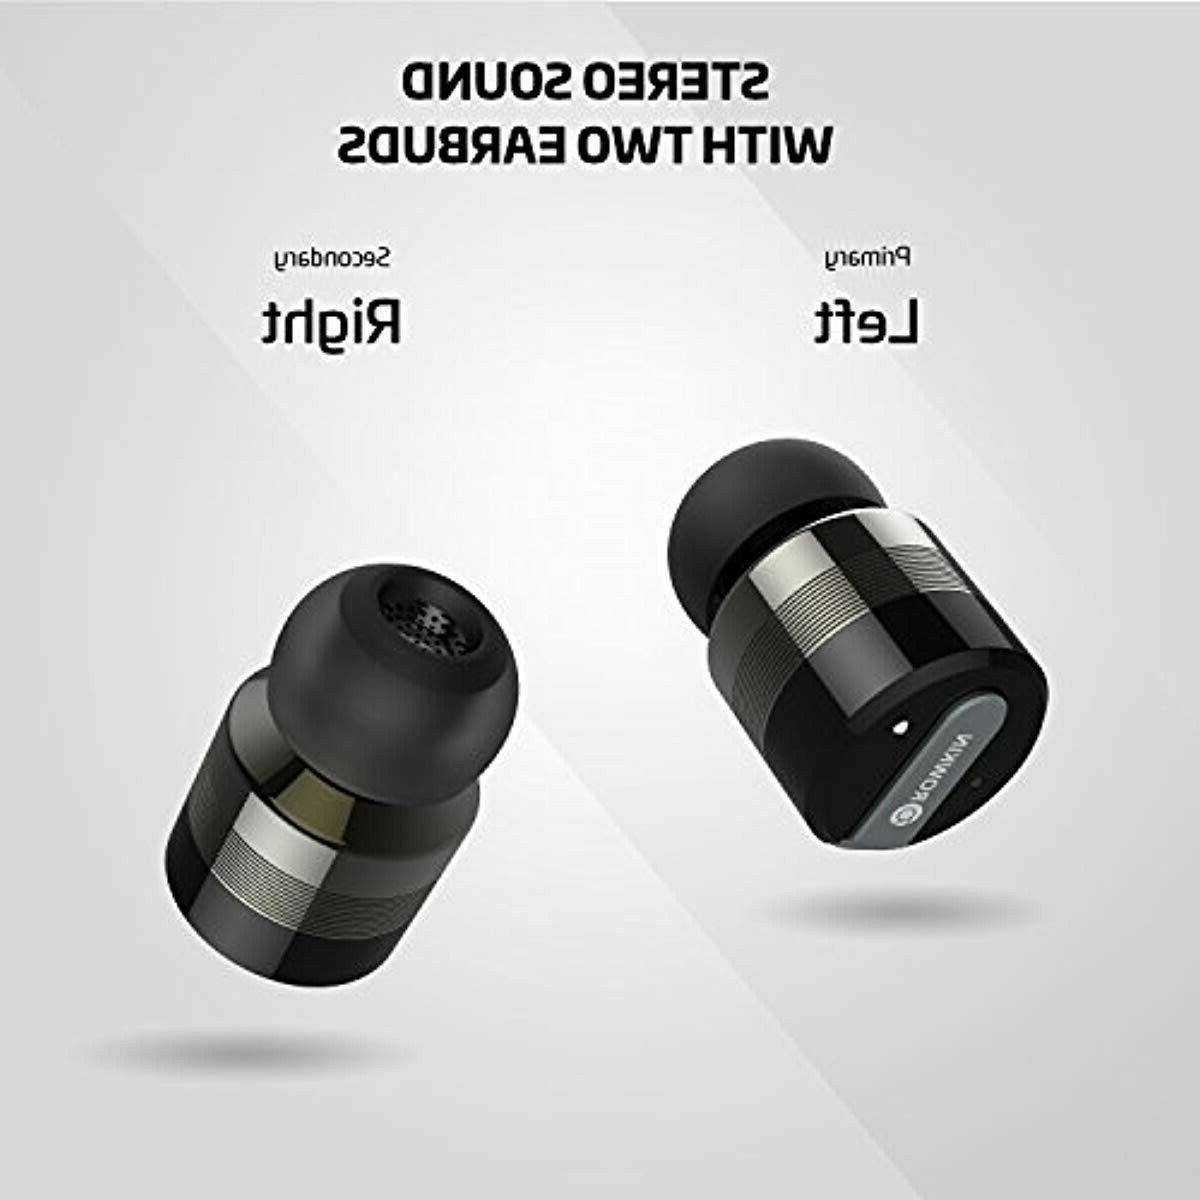 Rowkin Bluetooth Earbuds Charger.